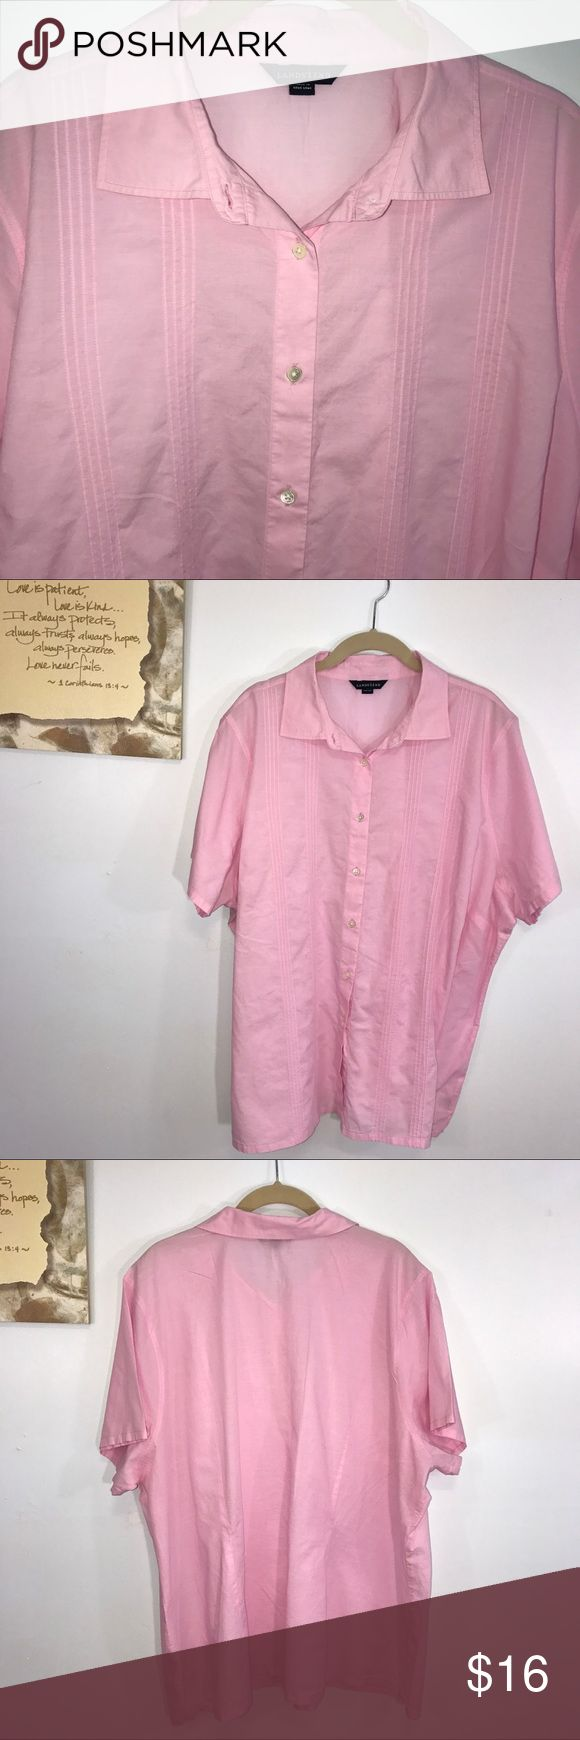 "Lands' End Pink Button-up Short Sleeve Shirt 3X Lands' End pink button-up Short Sleeve Shirt. Lying flat, approximate measurements are: bust 28.5""; waist 28""; hip 28.5""; length 28.5"". (K01-04)    🌼No holes, piling or stains. Items stored in smoke free, pet free, perfume free environment. No trades or modeling. Same or next day shipping.  Save by bundling. All offers should be submitted with the offer button. Lands' End Tops"